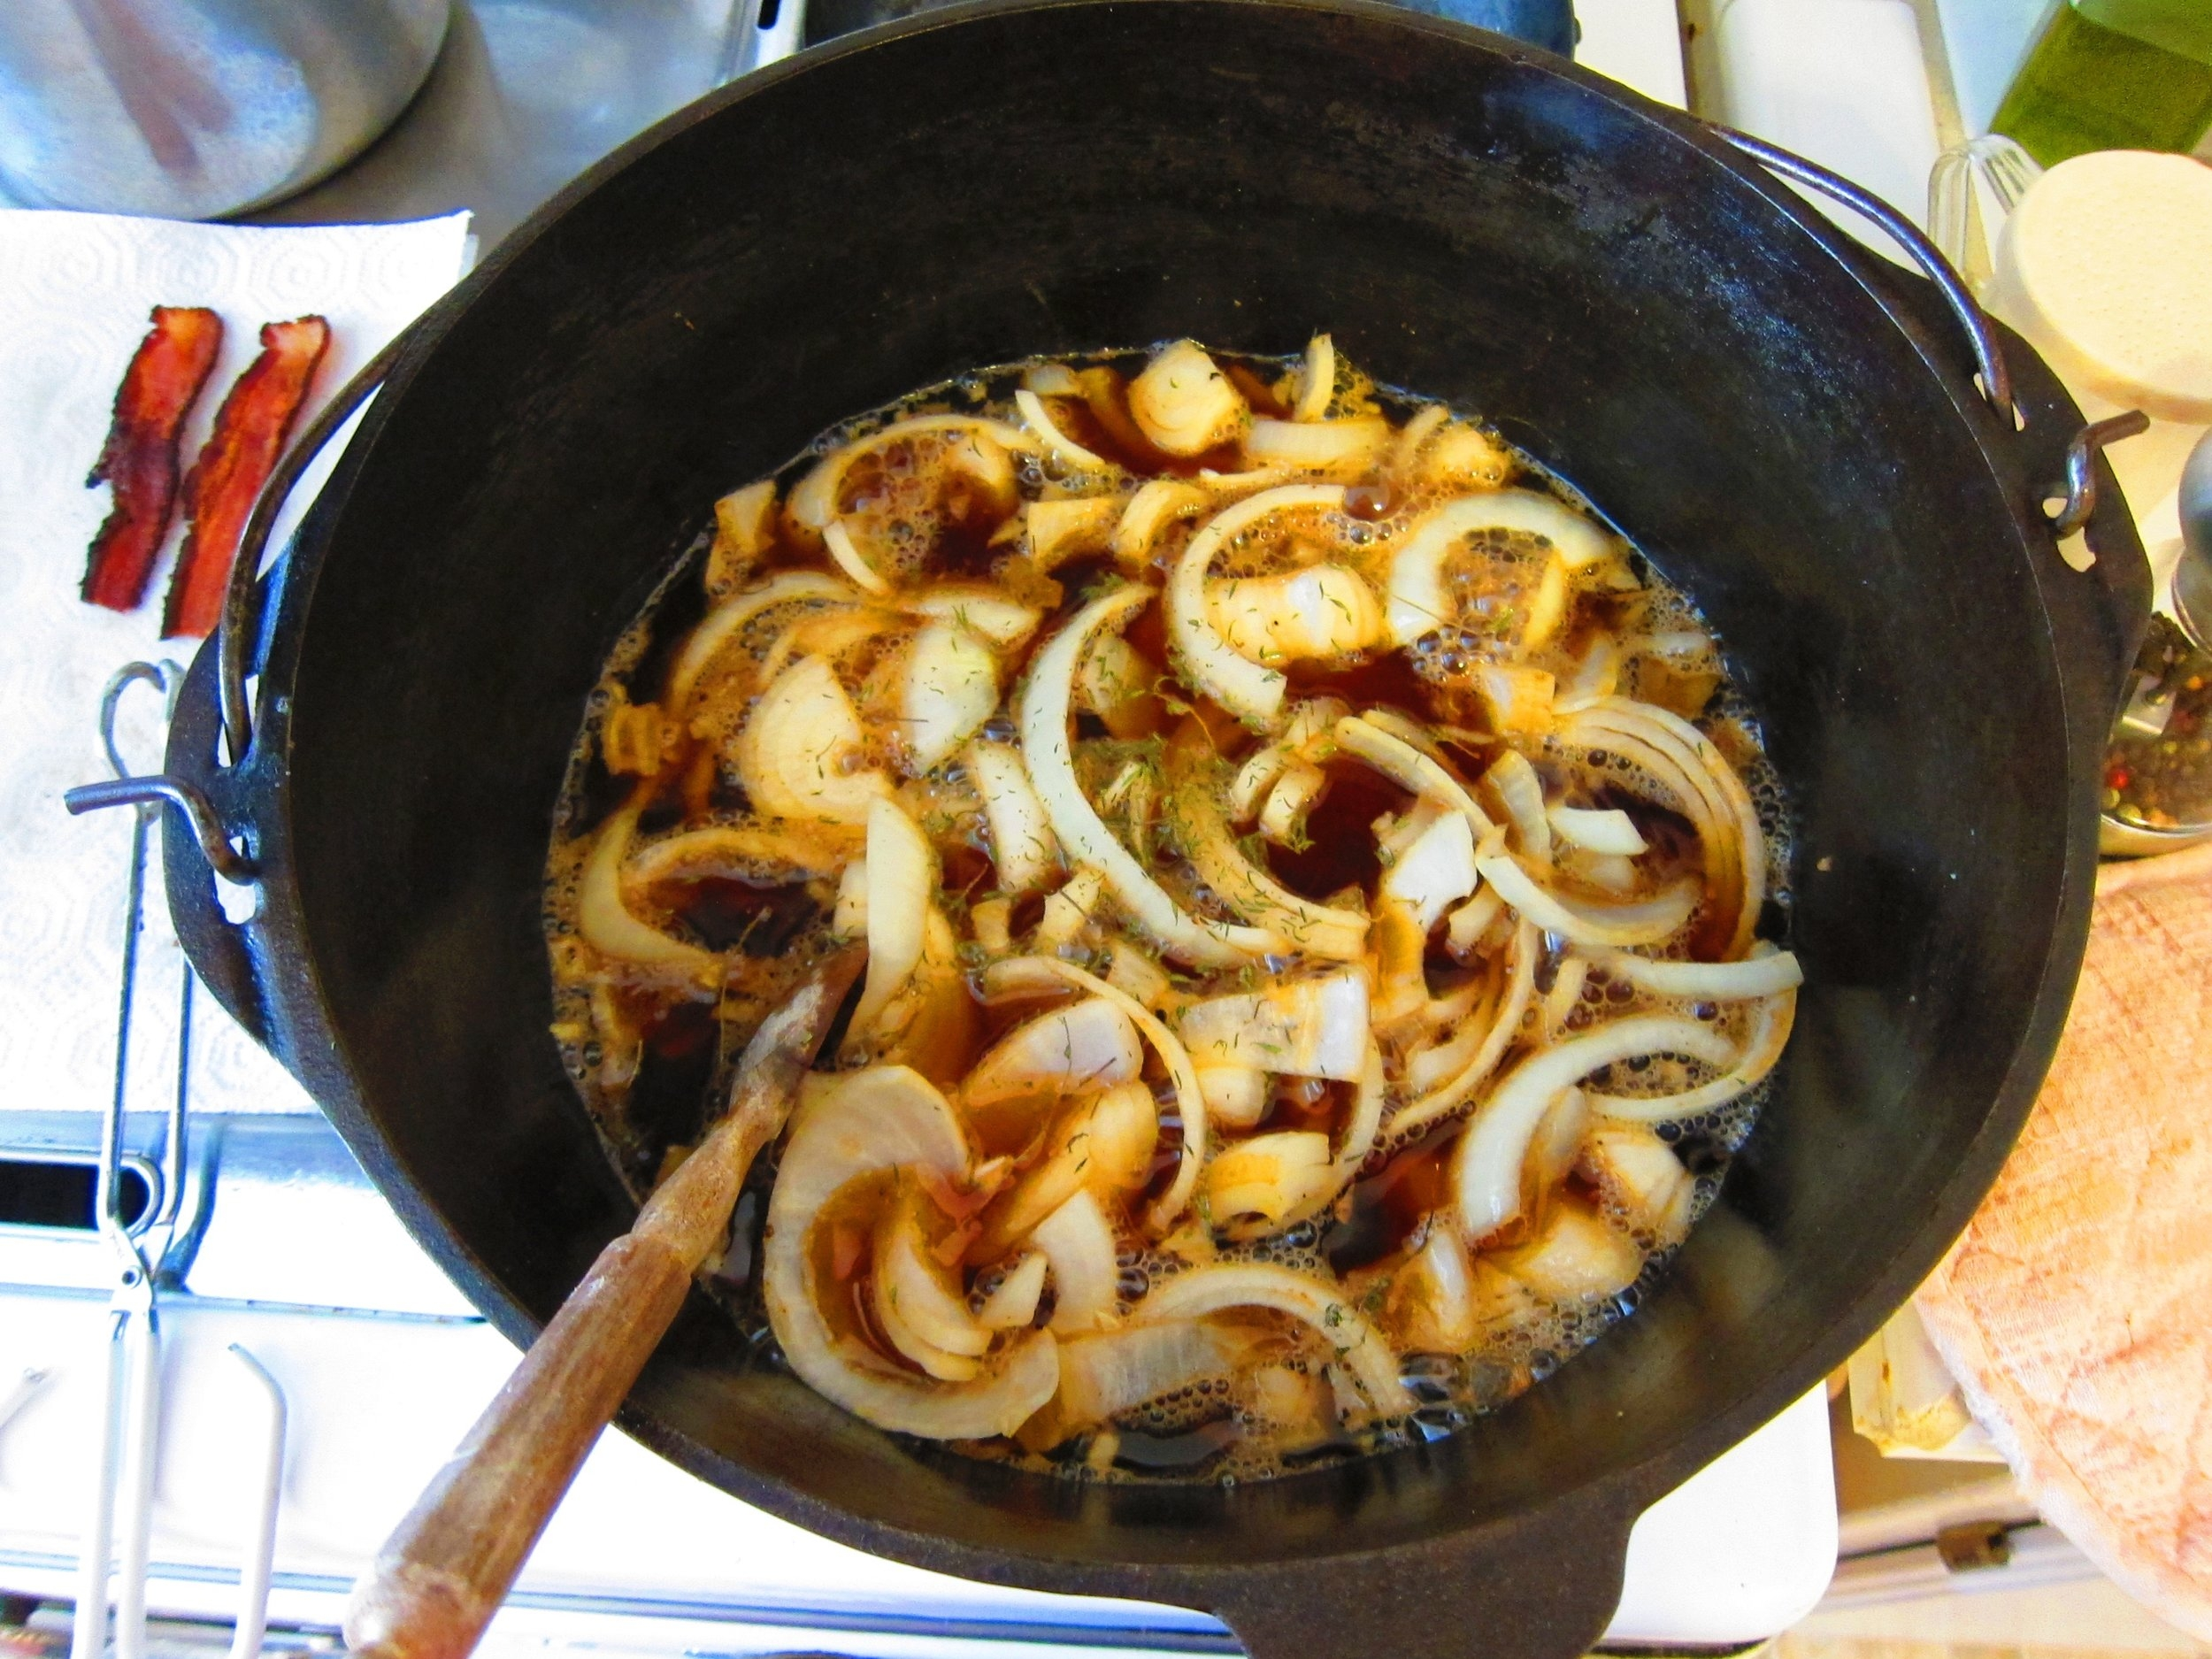 A Beef stew in it's beginning stages. What beats the smell of a pot of garlic and onions?